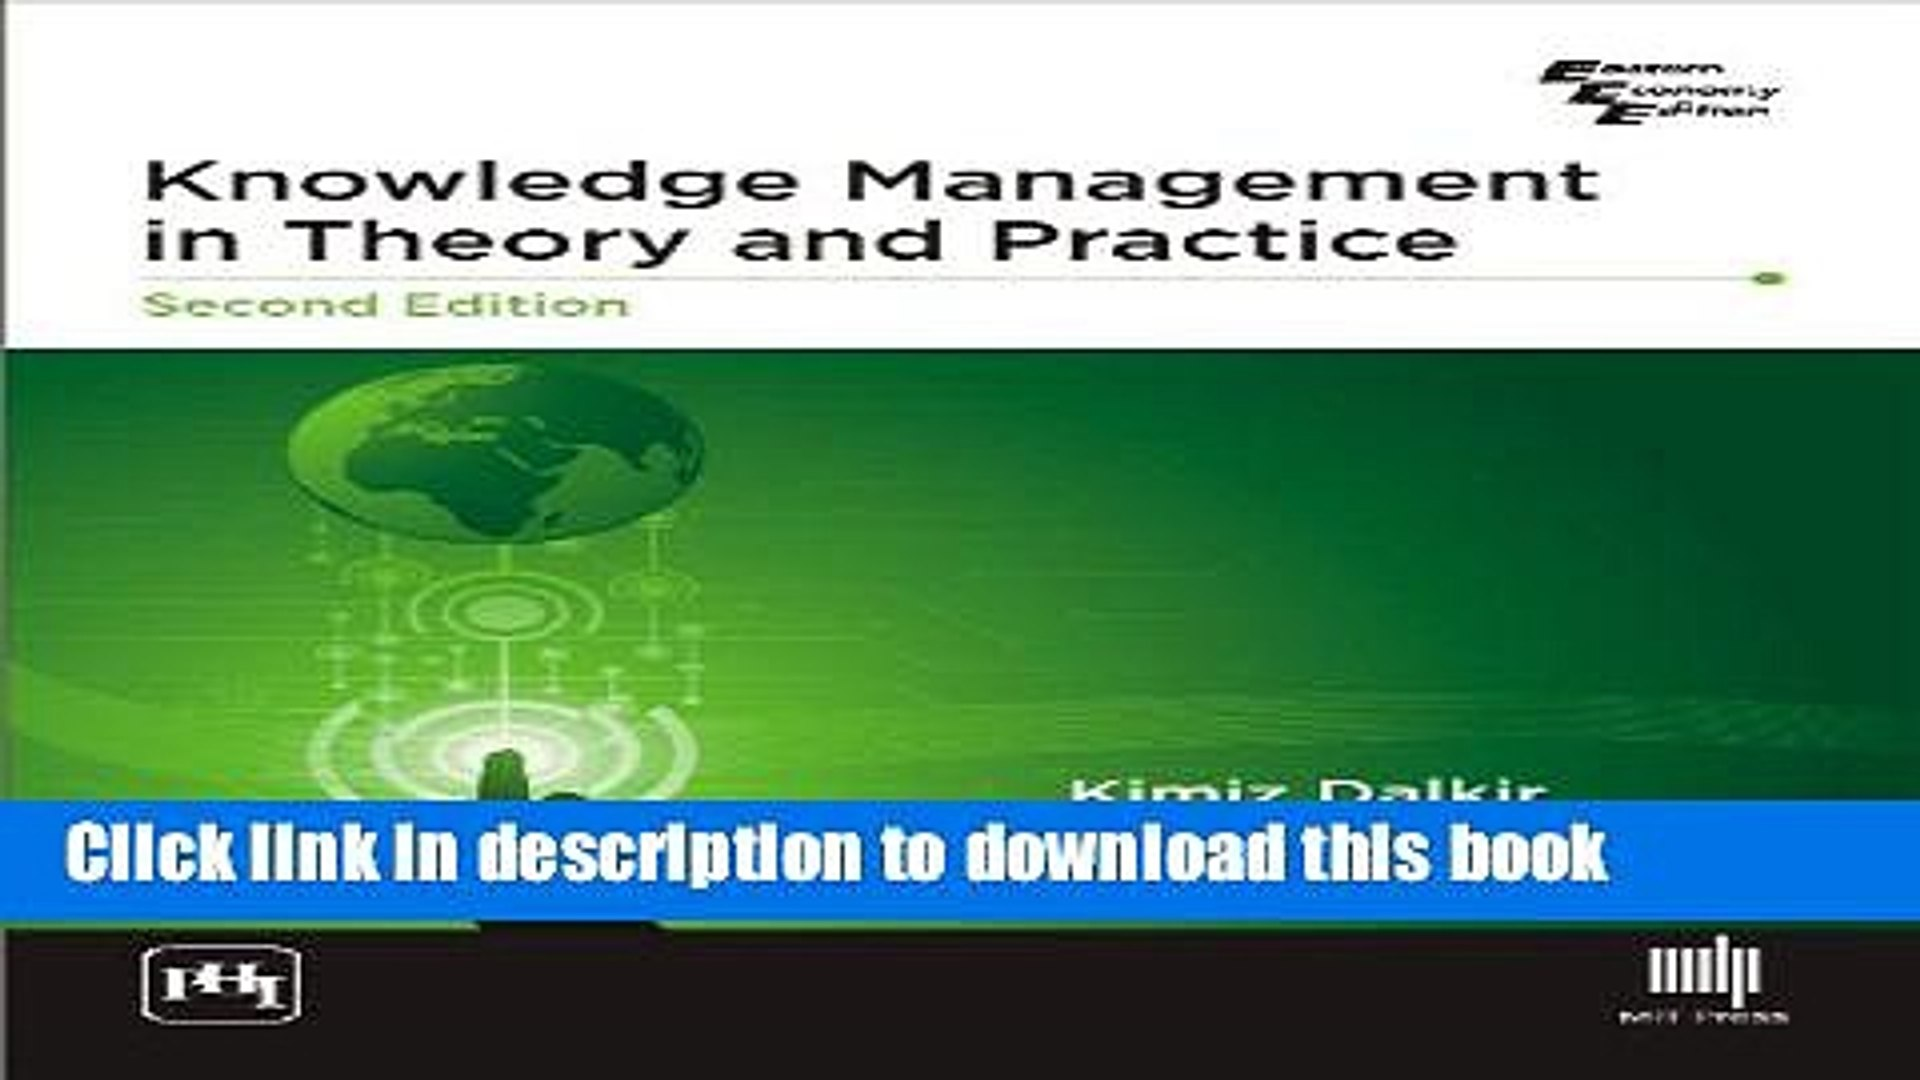 and Knowledge Platforms paperback 2nd Edition The Knowledge Management Toolkit: Orchestrating IT Strategy